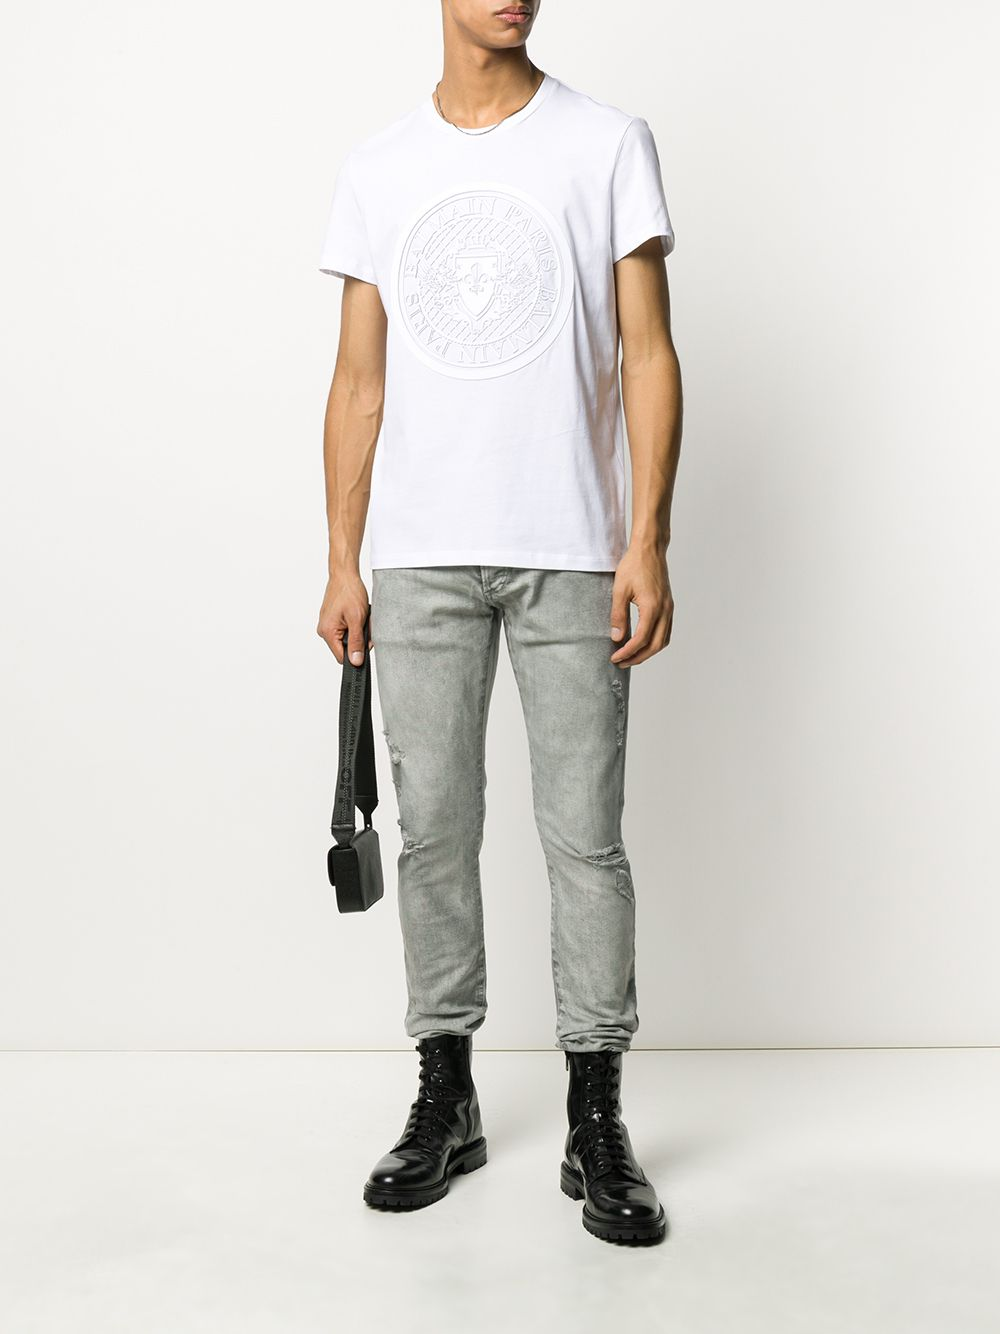 BALMAIN medallion flock logo t-shirt white/white - Maison De Fashion